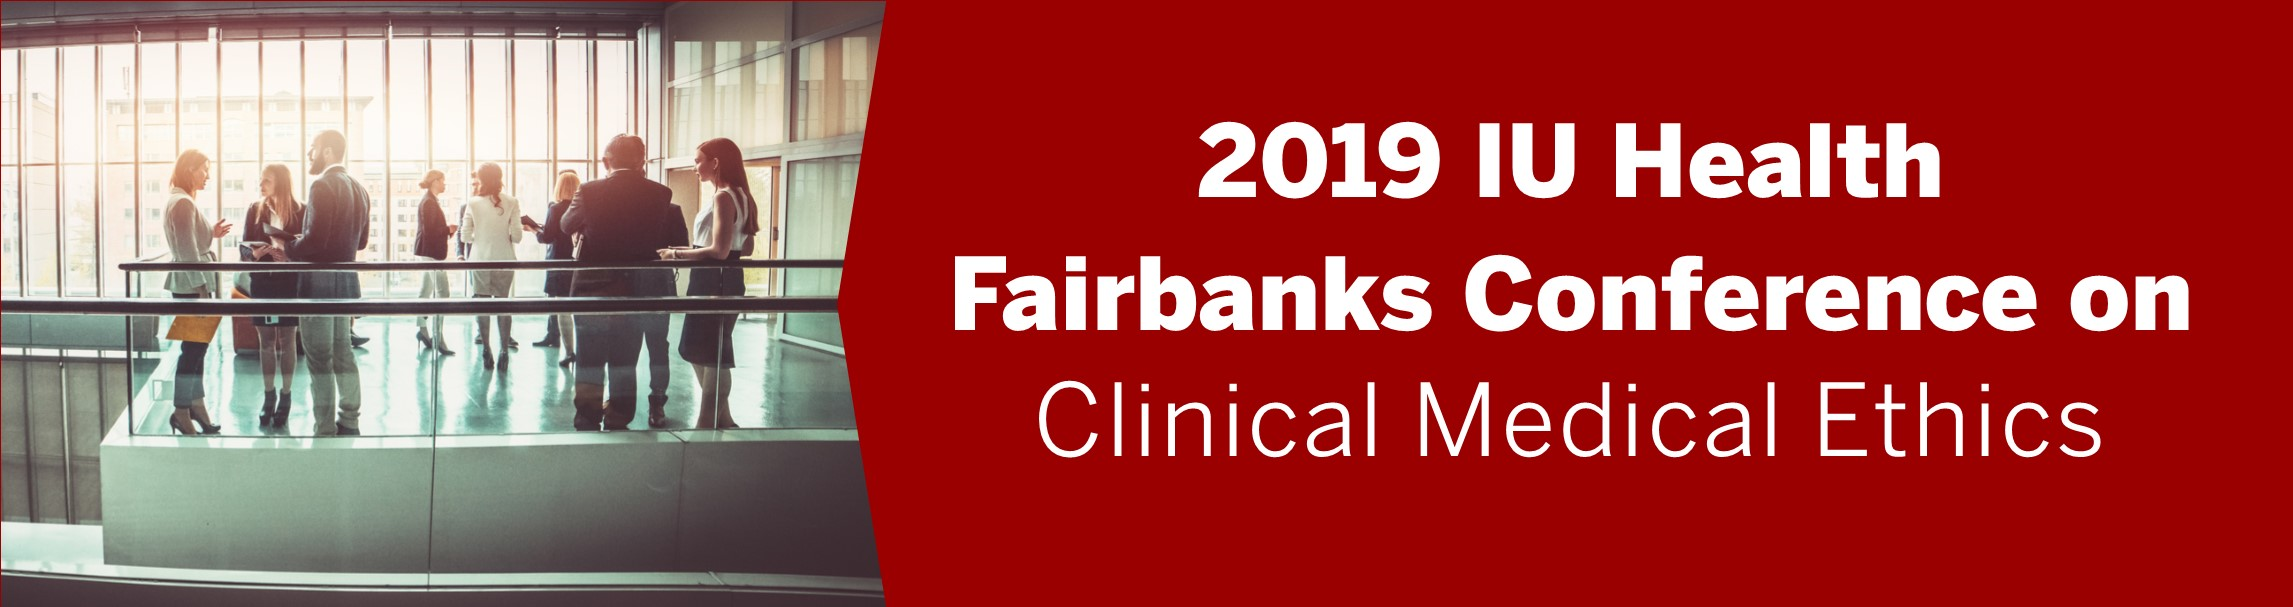 2019 IU Health Fairbanks Conference on Clinical Medical Ethics Banner